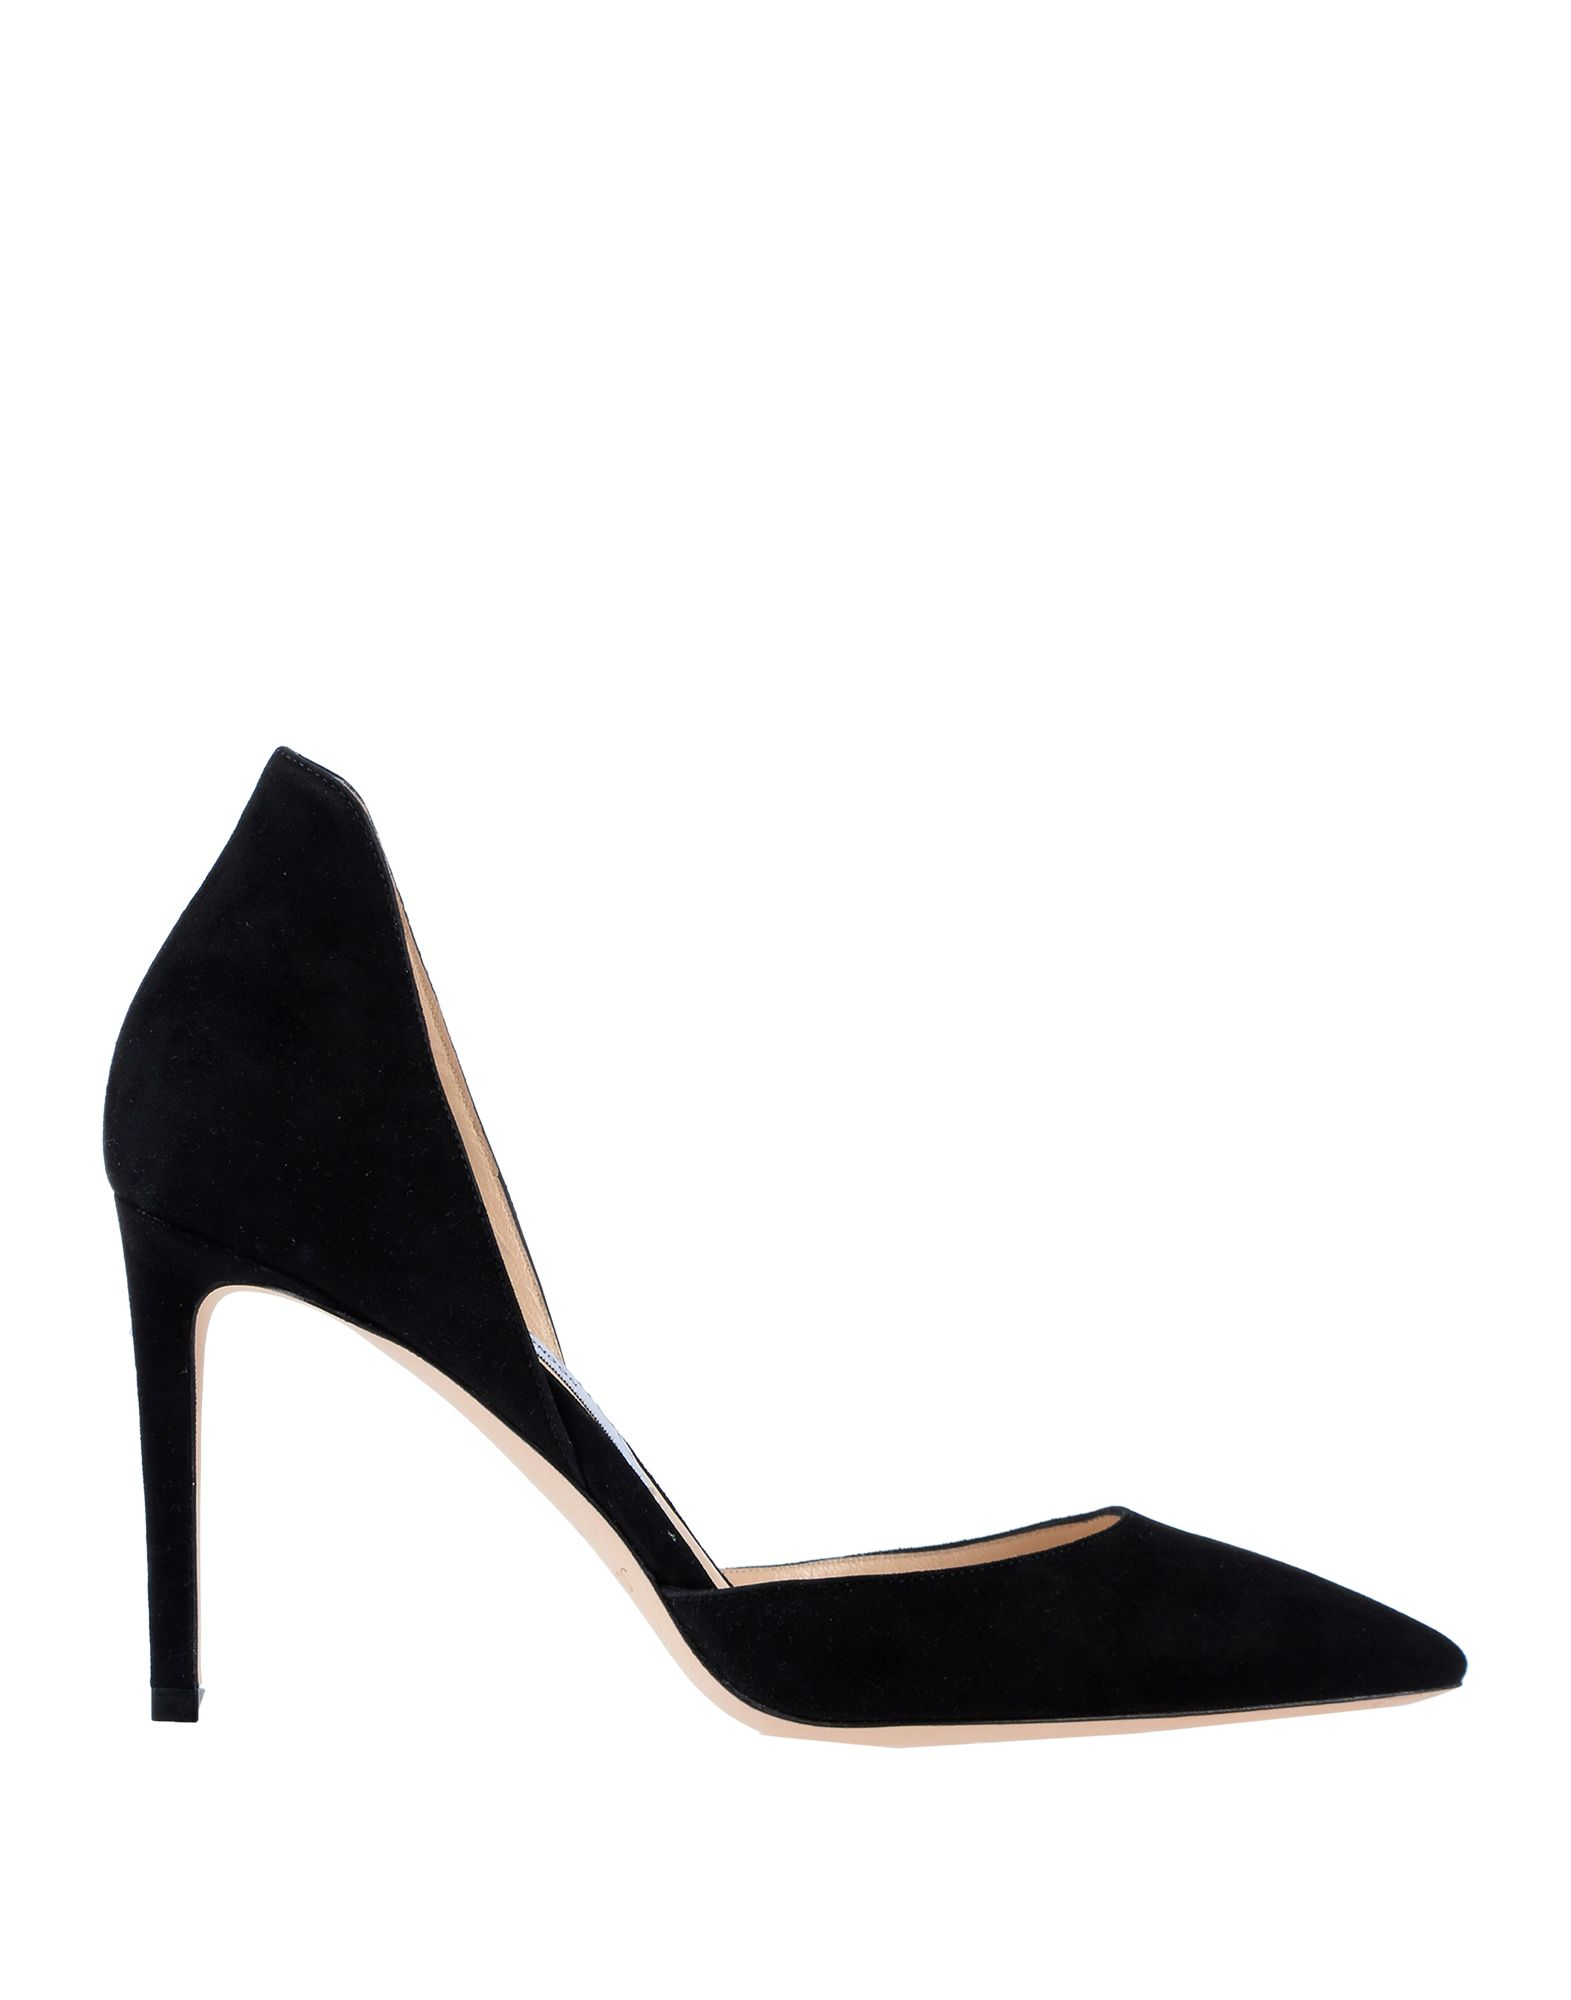 092daae6828 Jimmy Choo Court - Women Jimmy Choo Courts online on YOOX Sweden ...